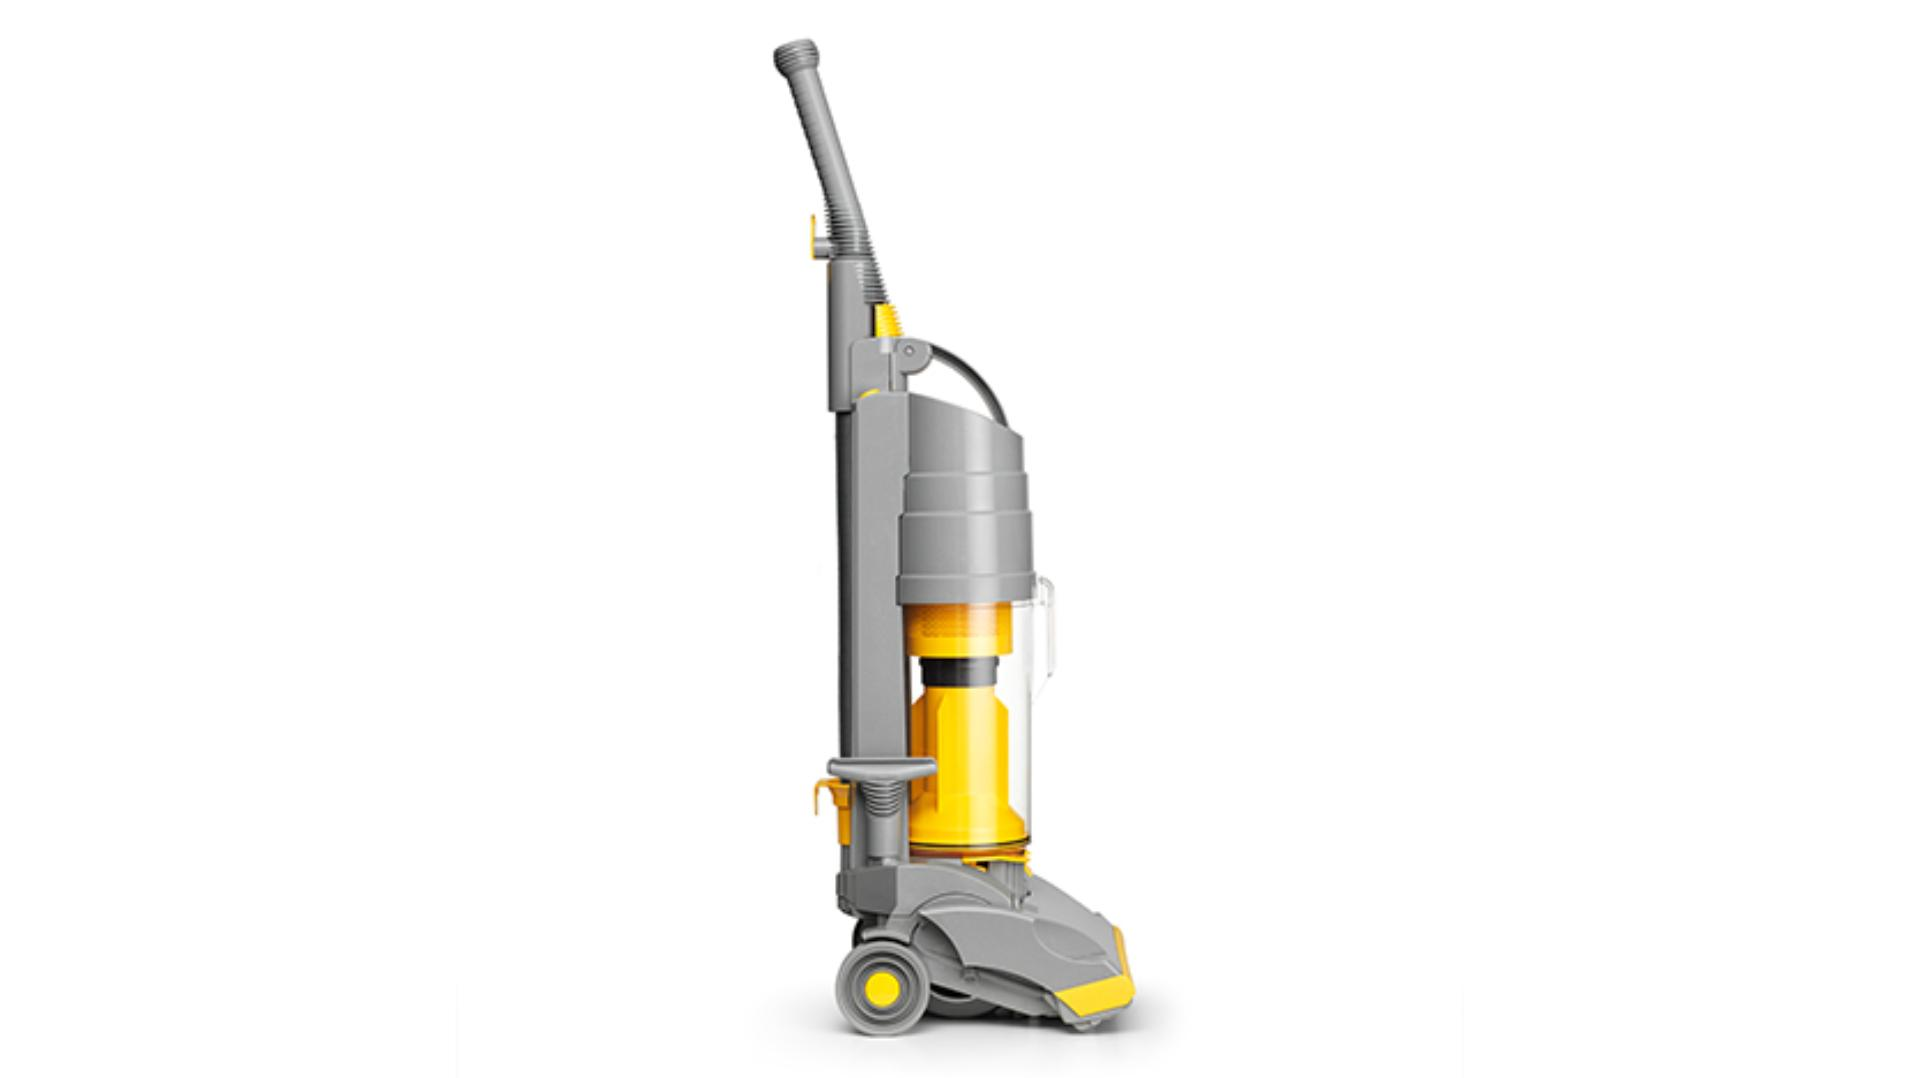 Side view of DC01 upright vacuum, yellow and grey